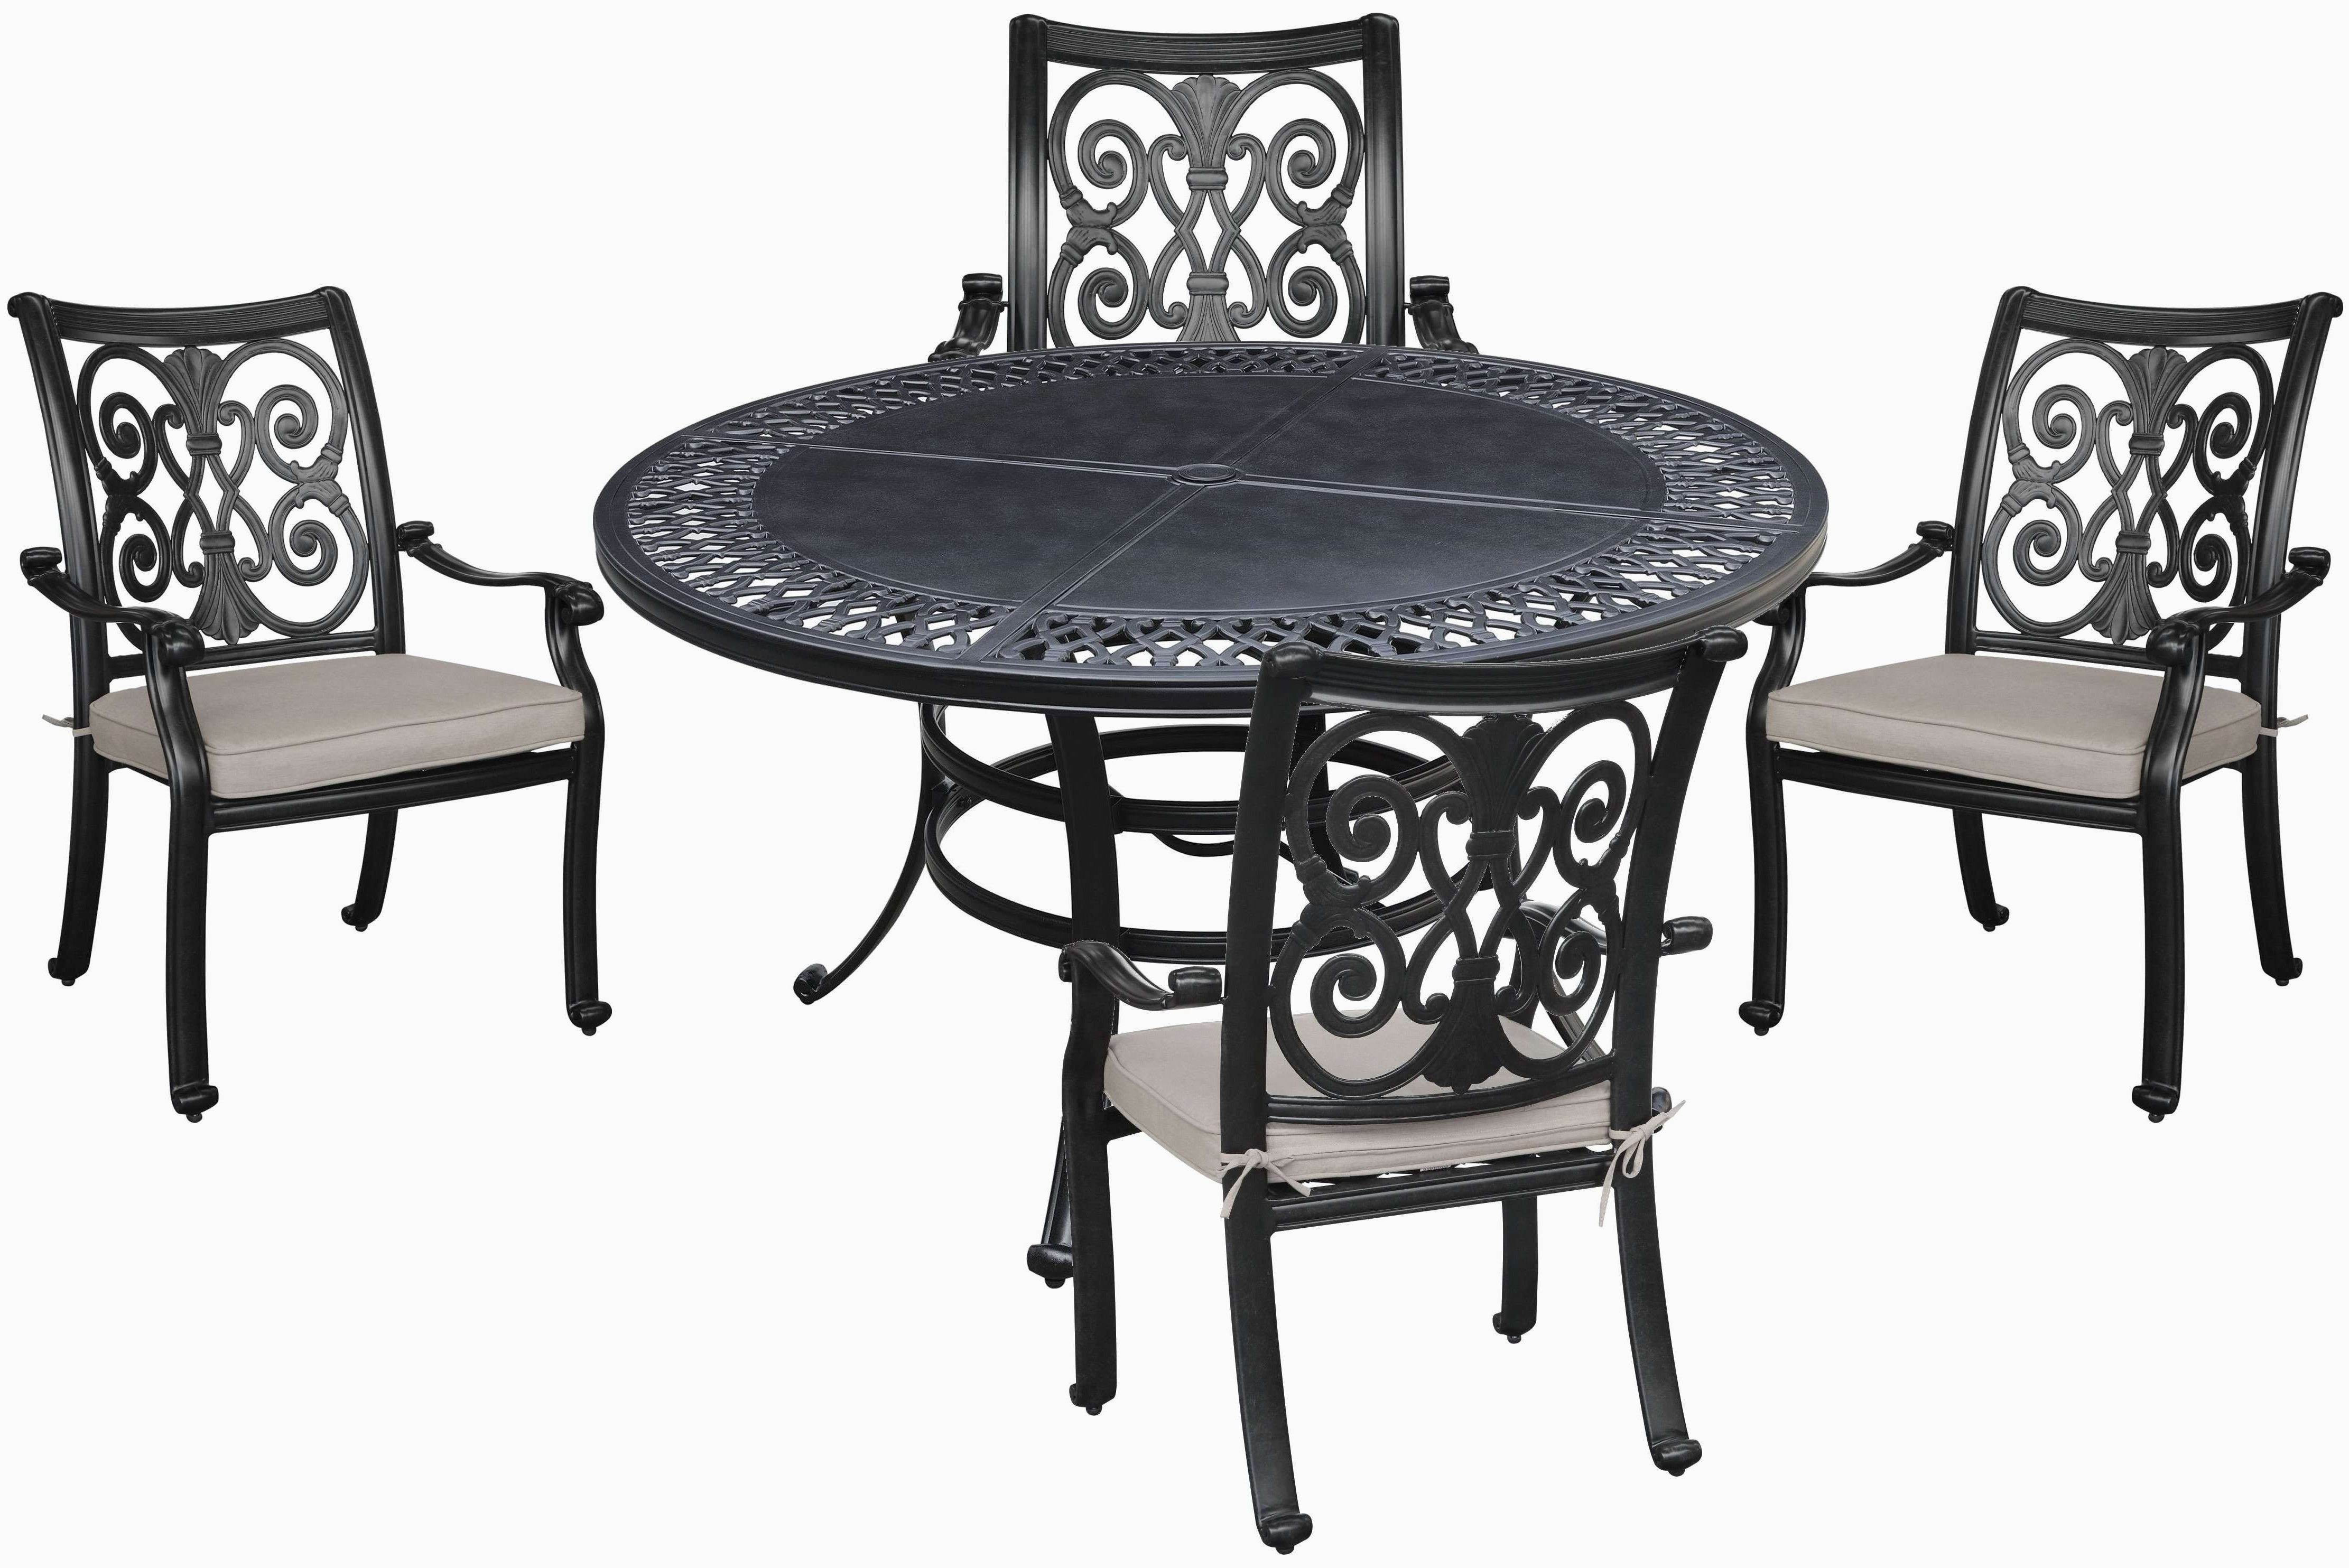 Fashionable Small Dining Tables For 2 For Tiny Dining Tables Inspirational 29 Pleasing Small Dining Room Table (View 15 of 25)